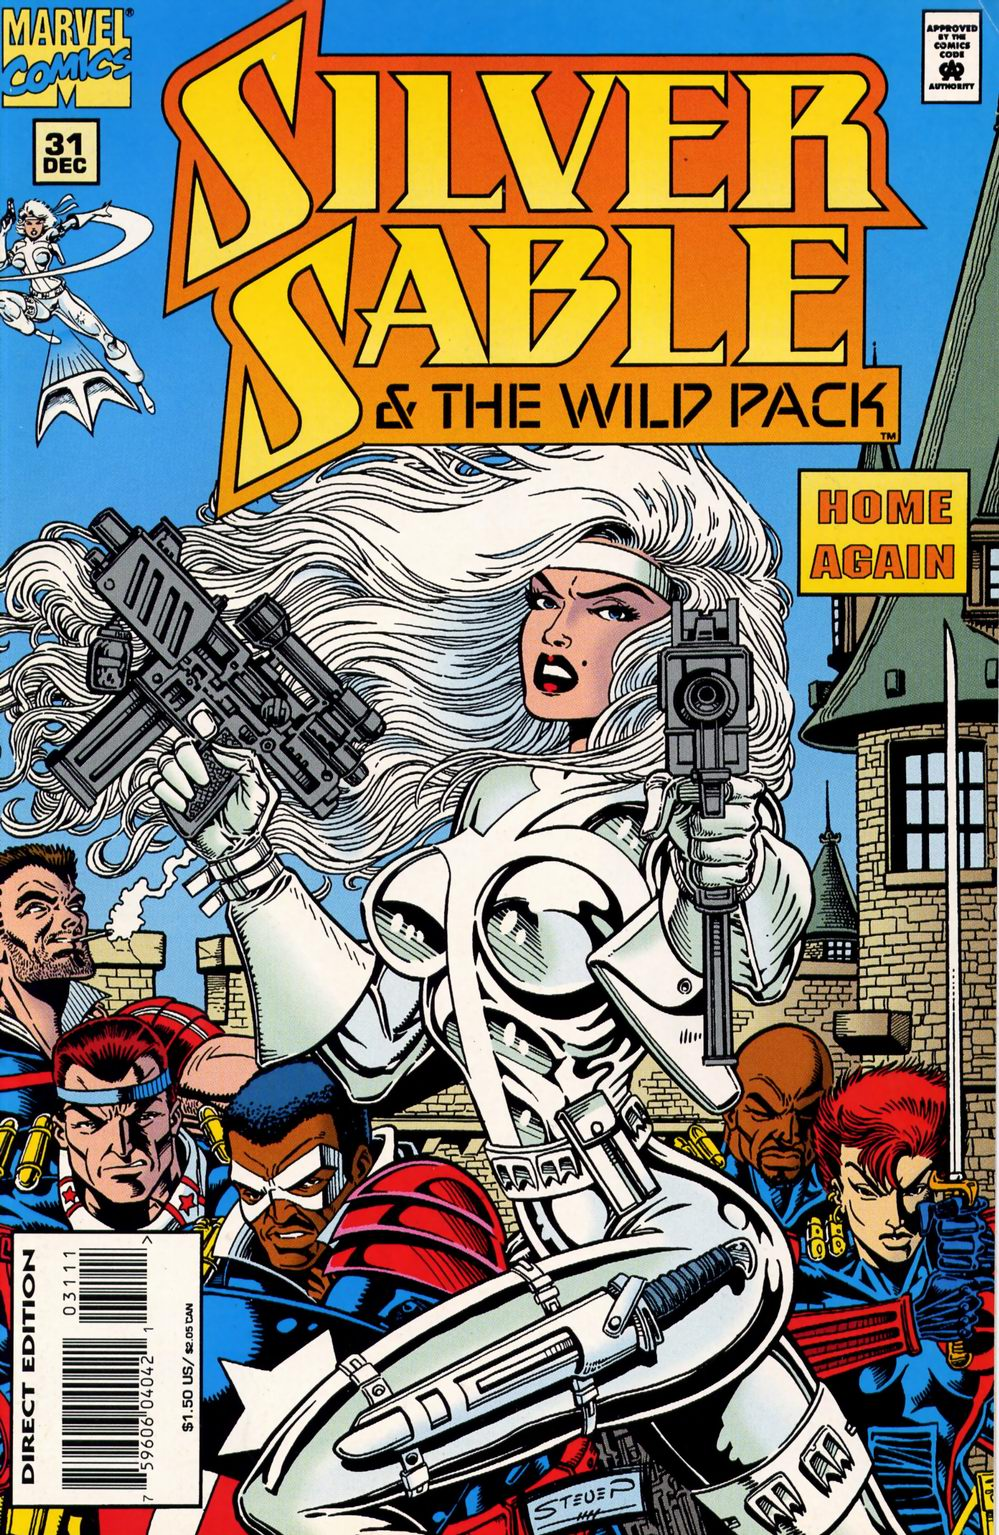 Read online Silver Sable and the Wild Pack comic -  Issue #31 - 1